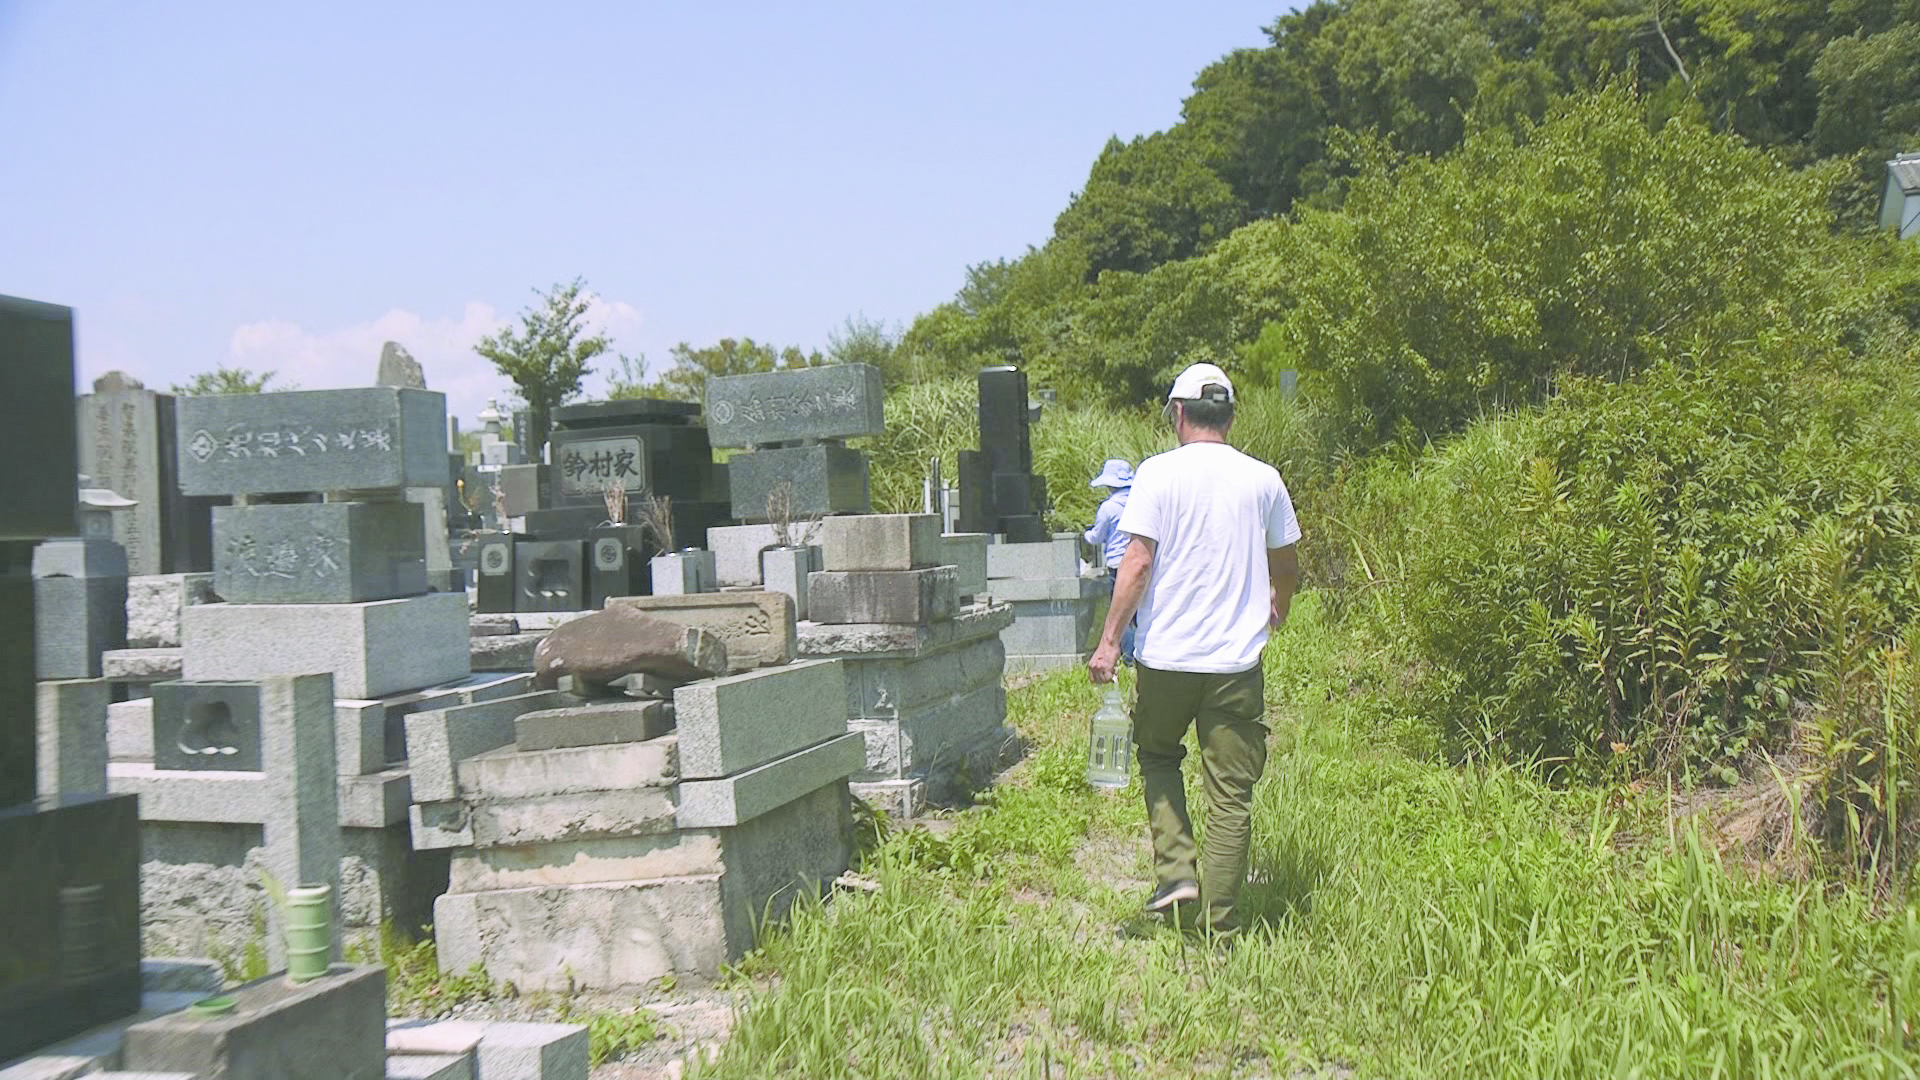 In the graveyard in Futaba, the headstones broke off of their foundation and the names of the deceased that once stood upright, have respectfully returned to the tops of the grave, but lain on their sides.